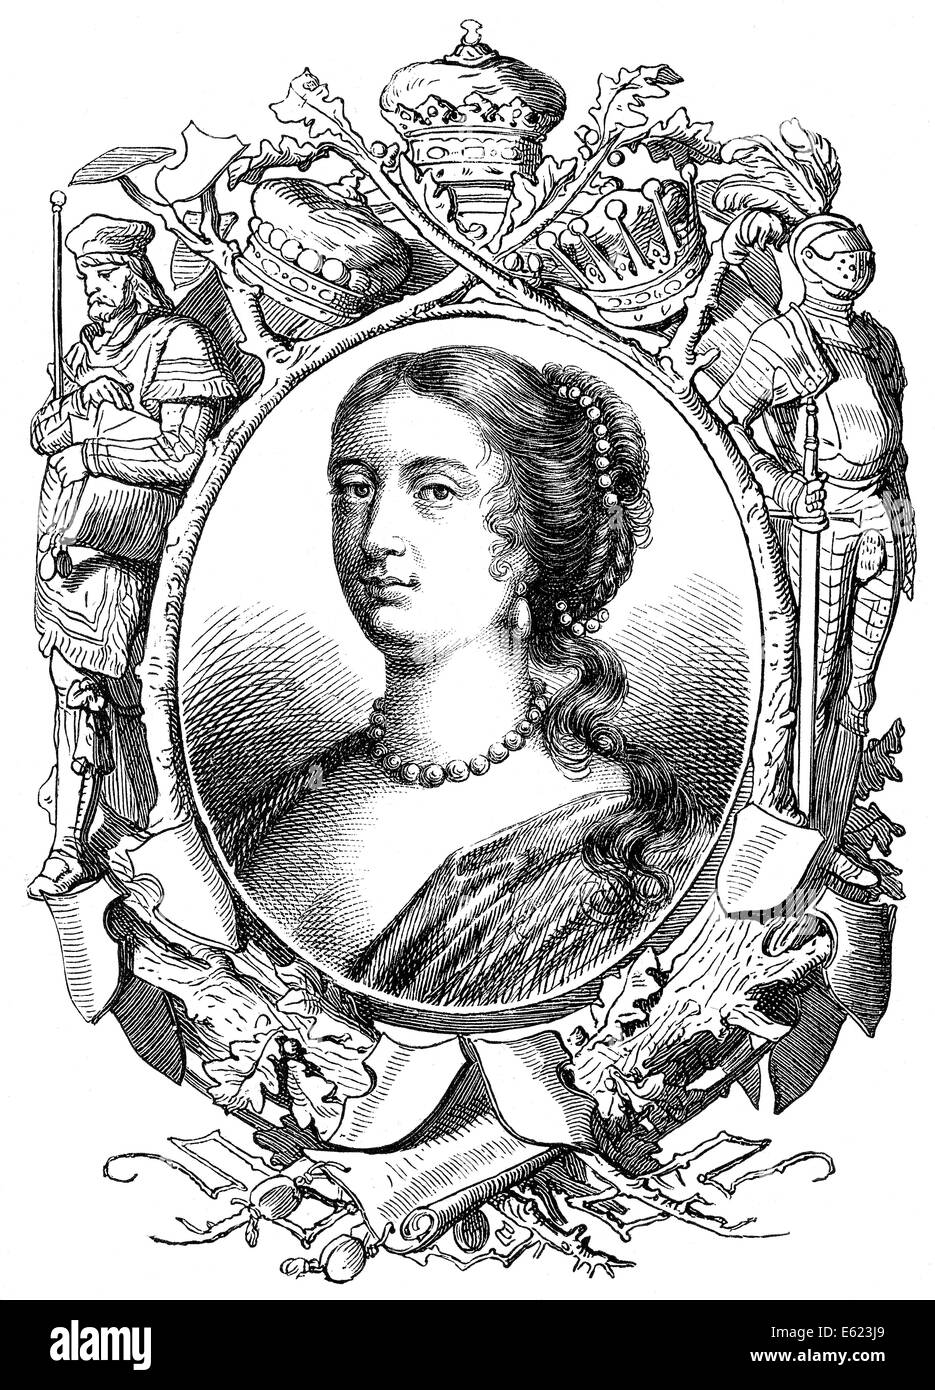 Rachel Wriothesley or Lady Russell, 1636 - 1723, an English aristocrat, Stock Photo